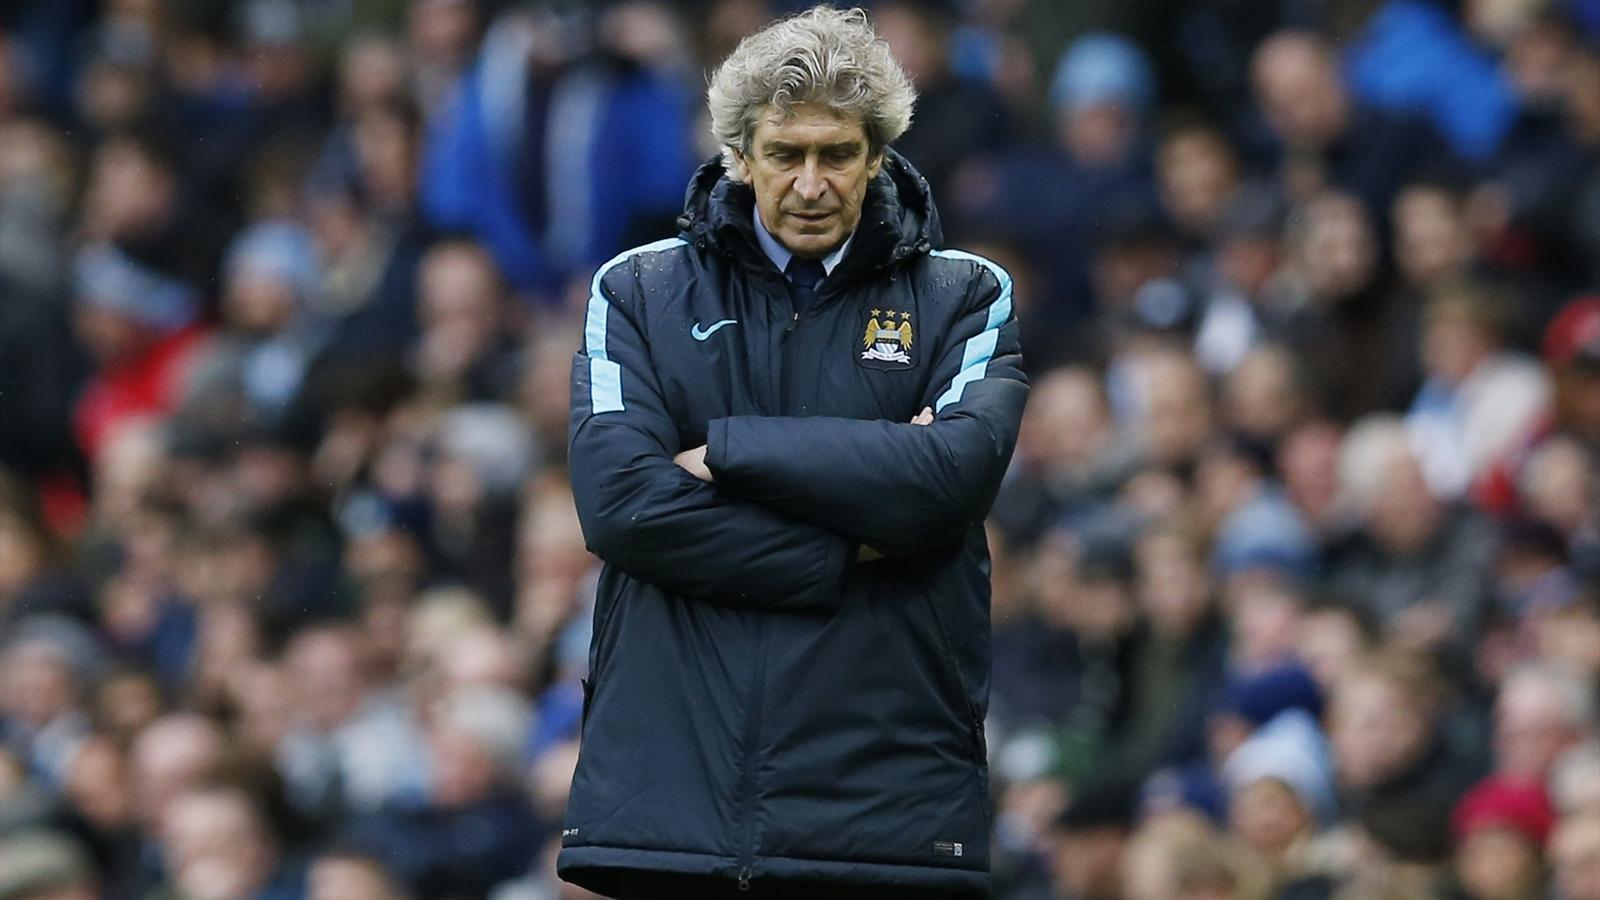 Manchester City manager Manuel Pellegrini during the match against Leicester